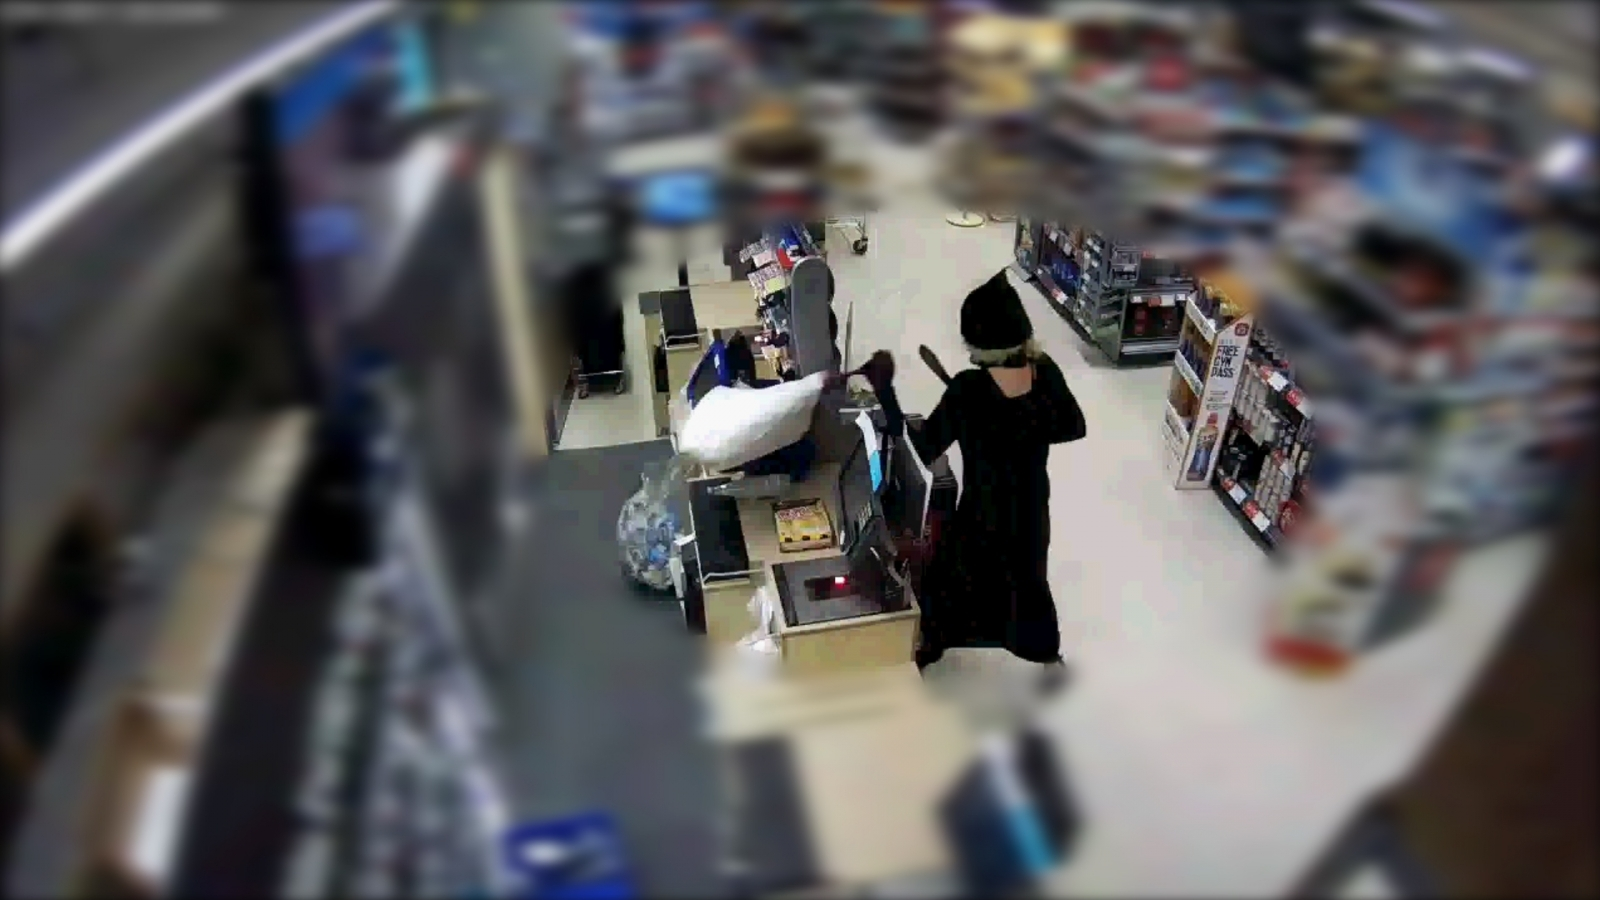 Machete-wielding drug addict robbed Co-op in a witch costume